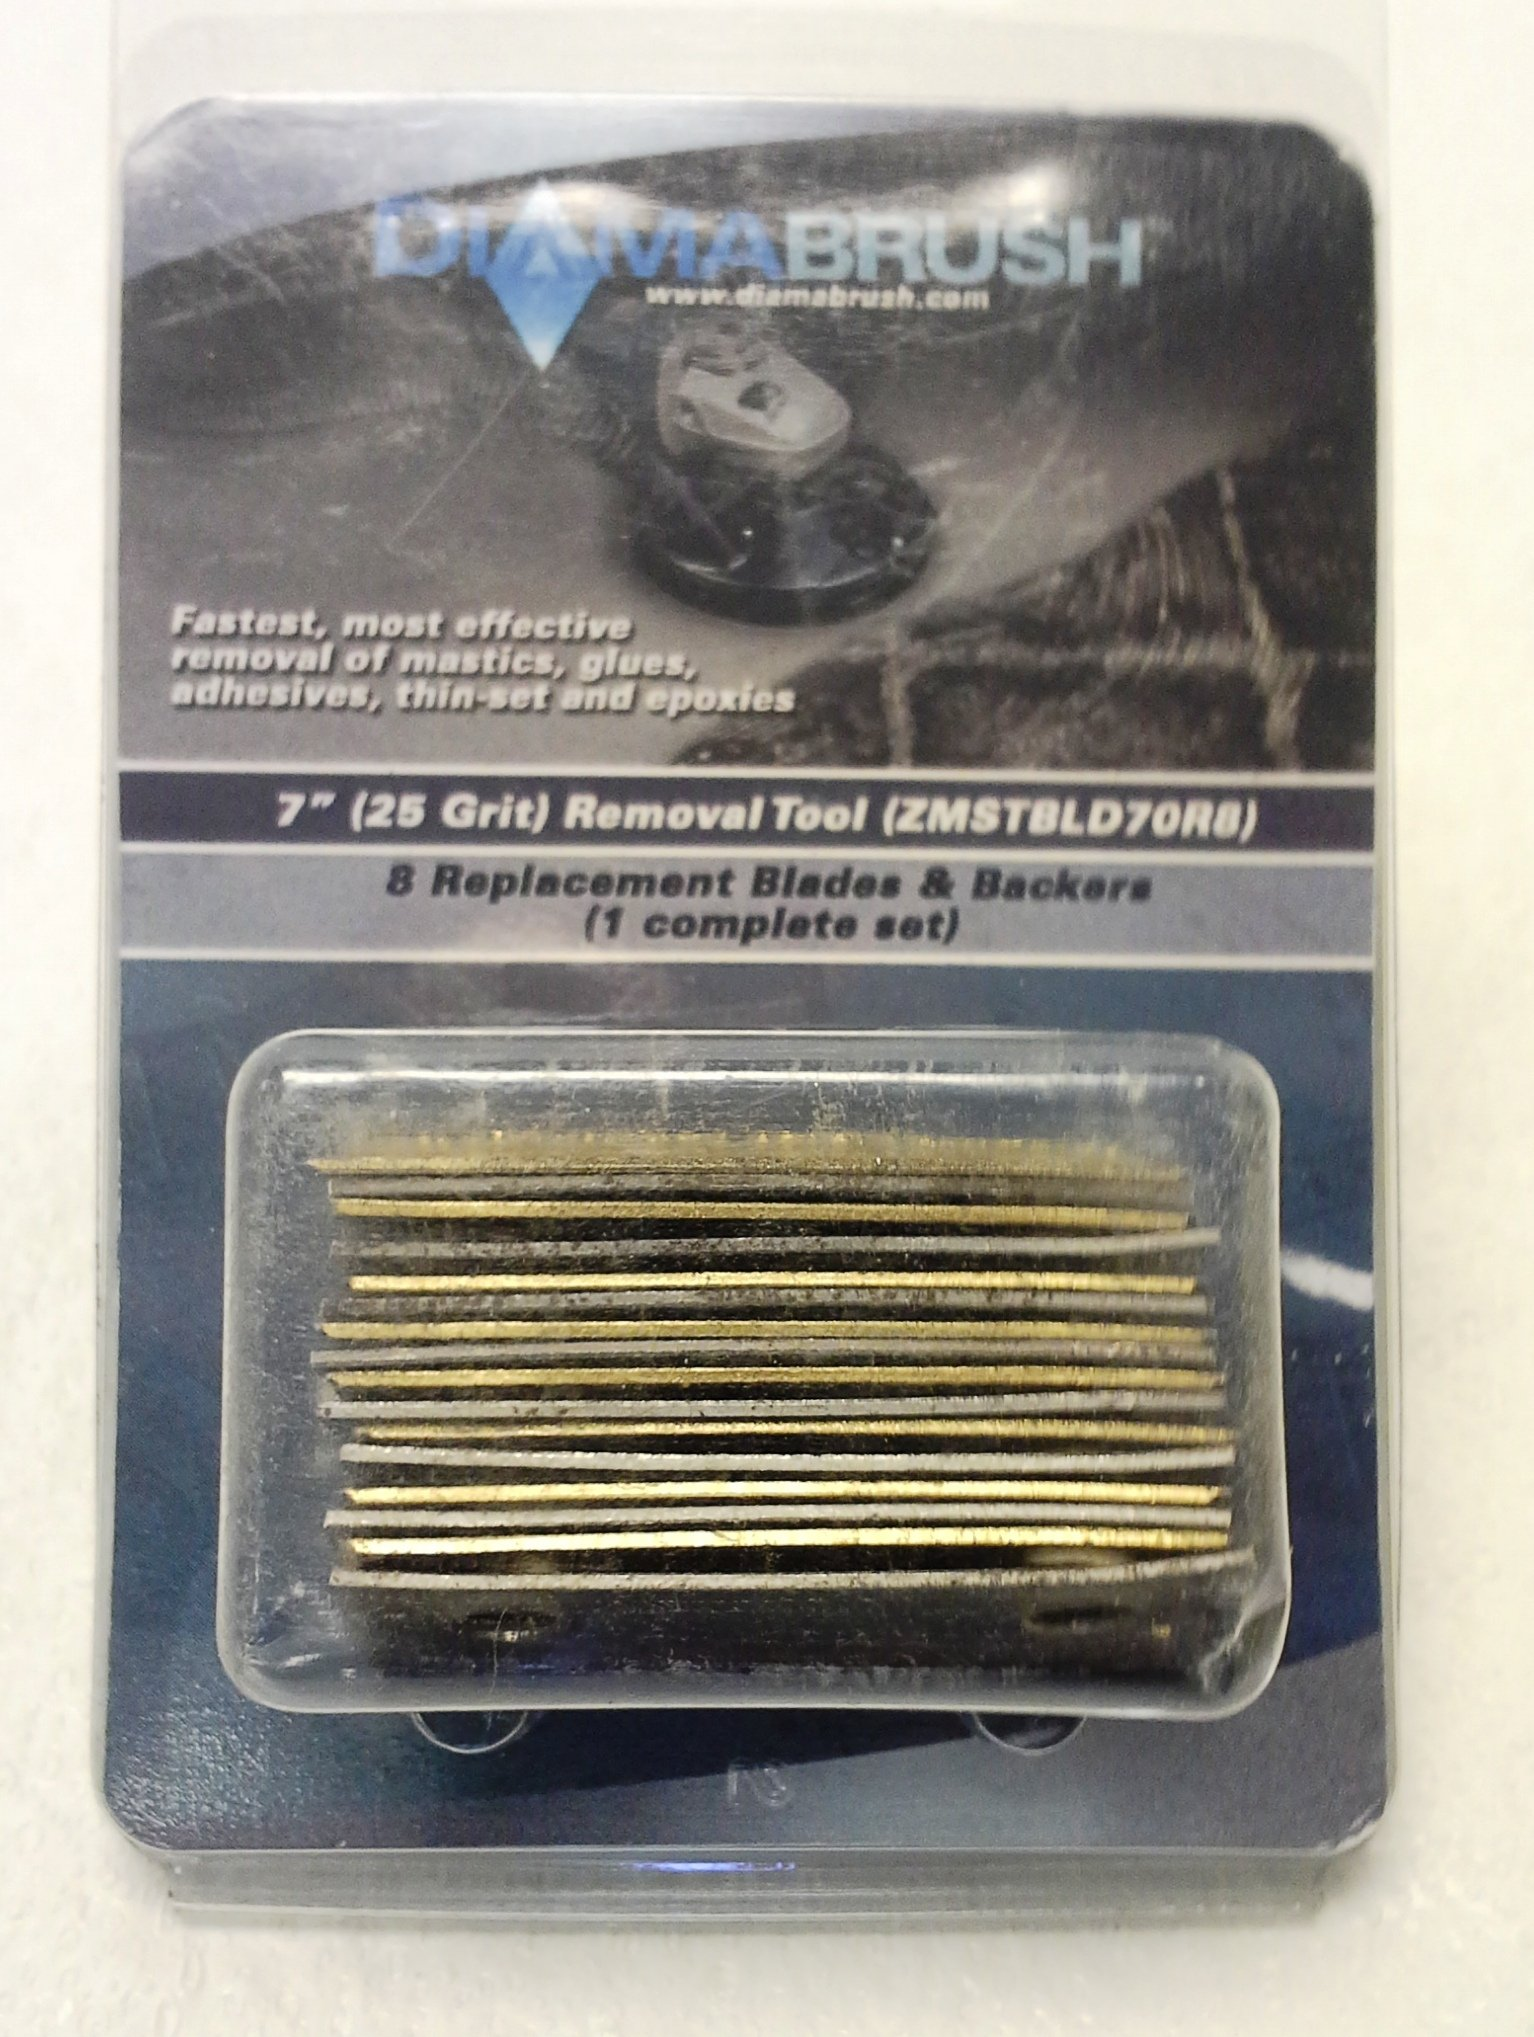 Diamabrush Removal Hand Tool Blades - 8 Blade - 25 Grit - zmstbld25r8rt70